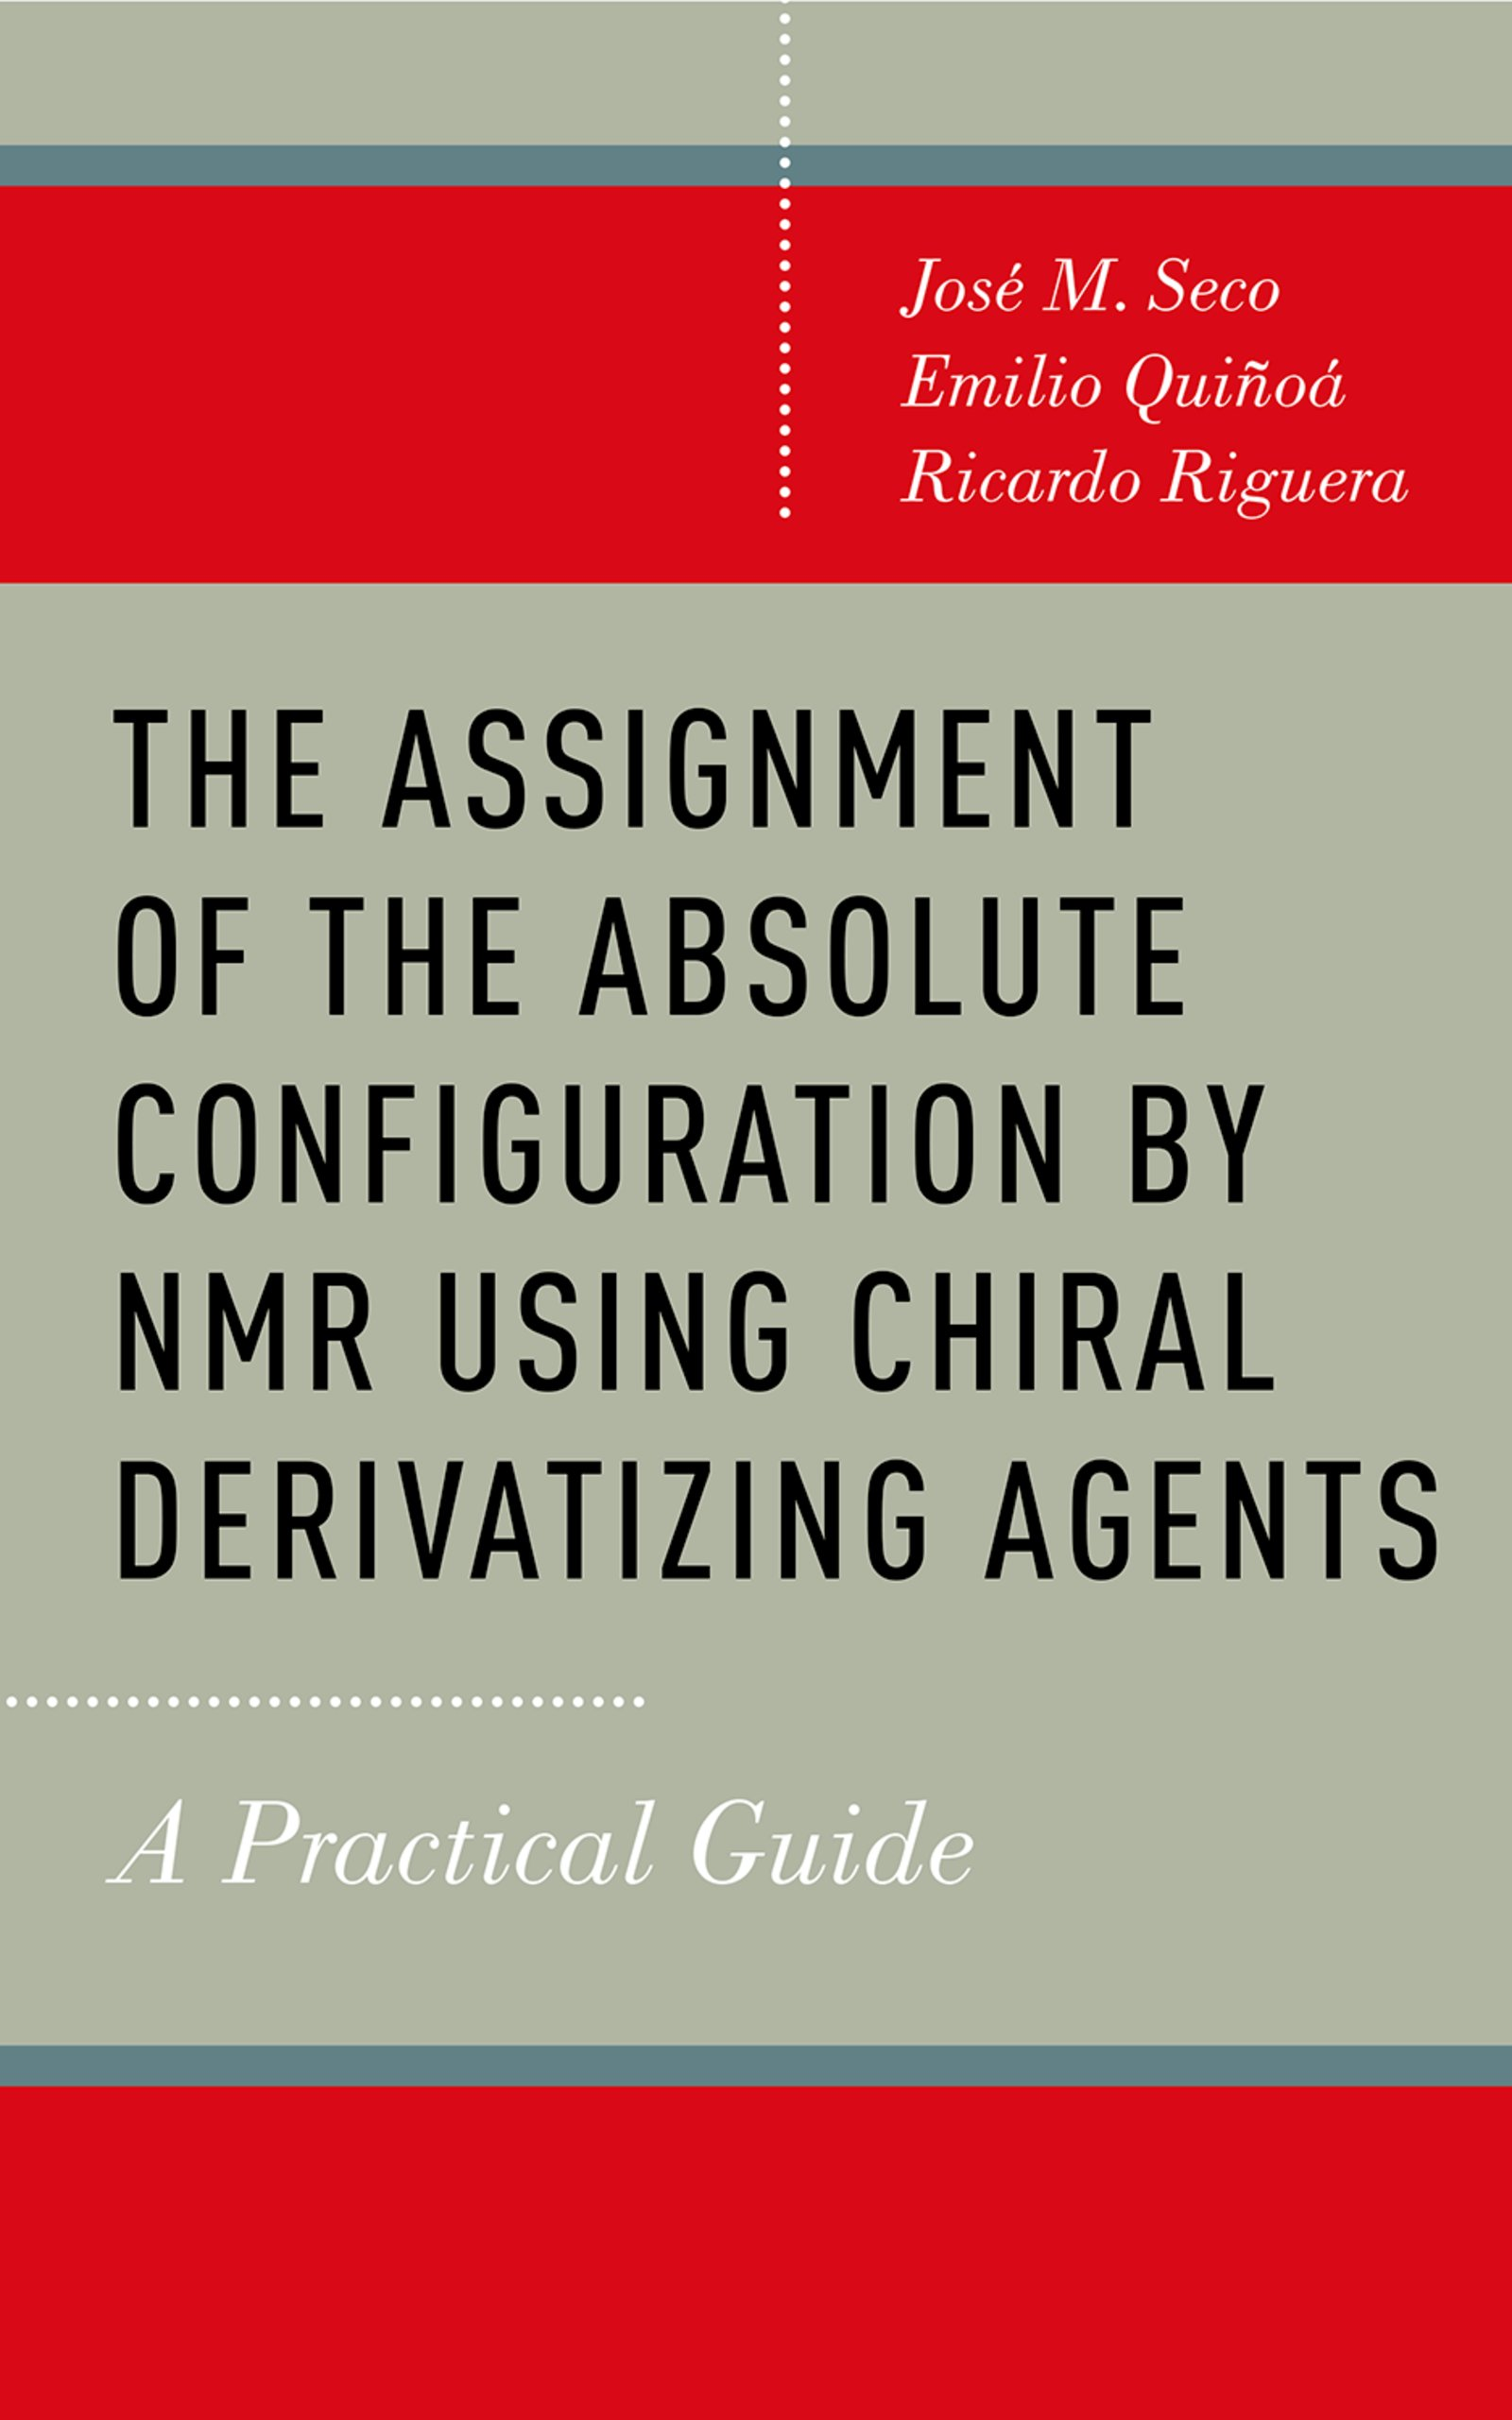 The Assignment of the Absolute Configuration by NMR using Chiral Derivatizing AgentsA Practical Guide